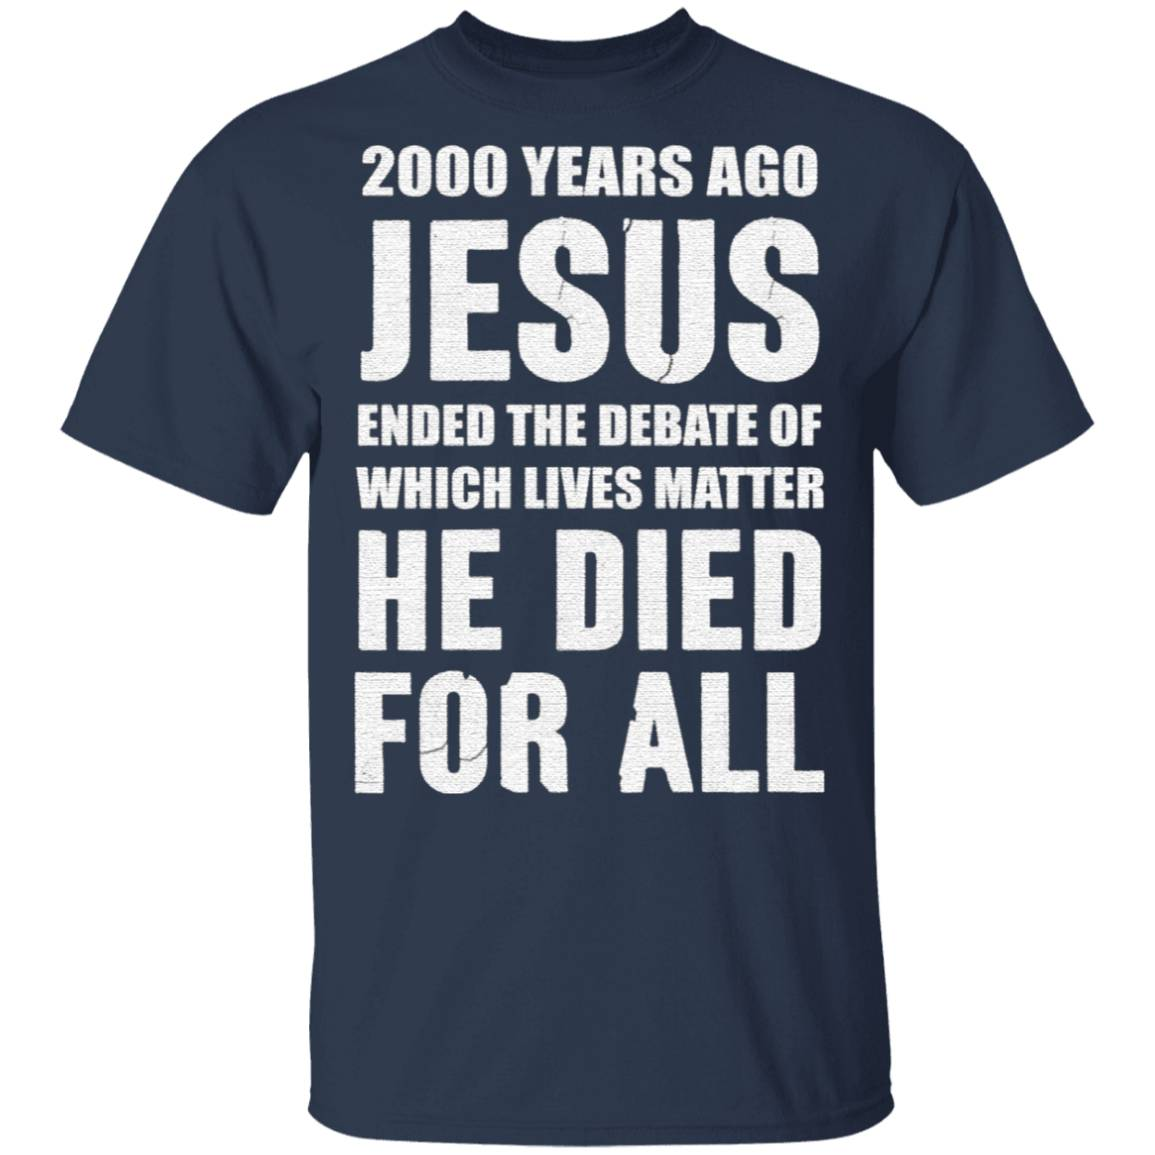 2000 Years Ago Jesus Ended The Debate of Which Lives Matter tshirt